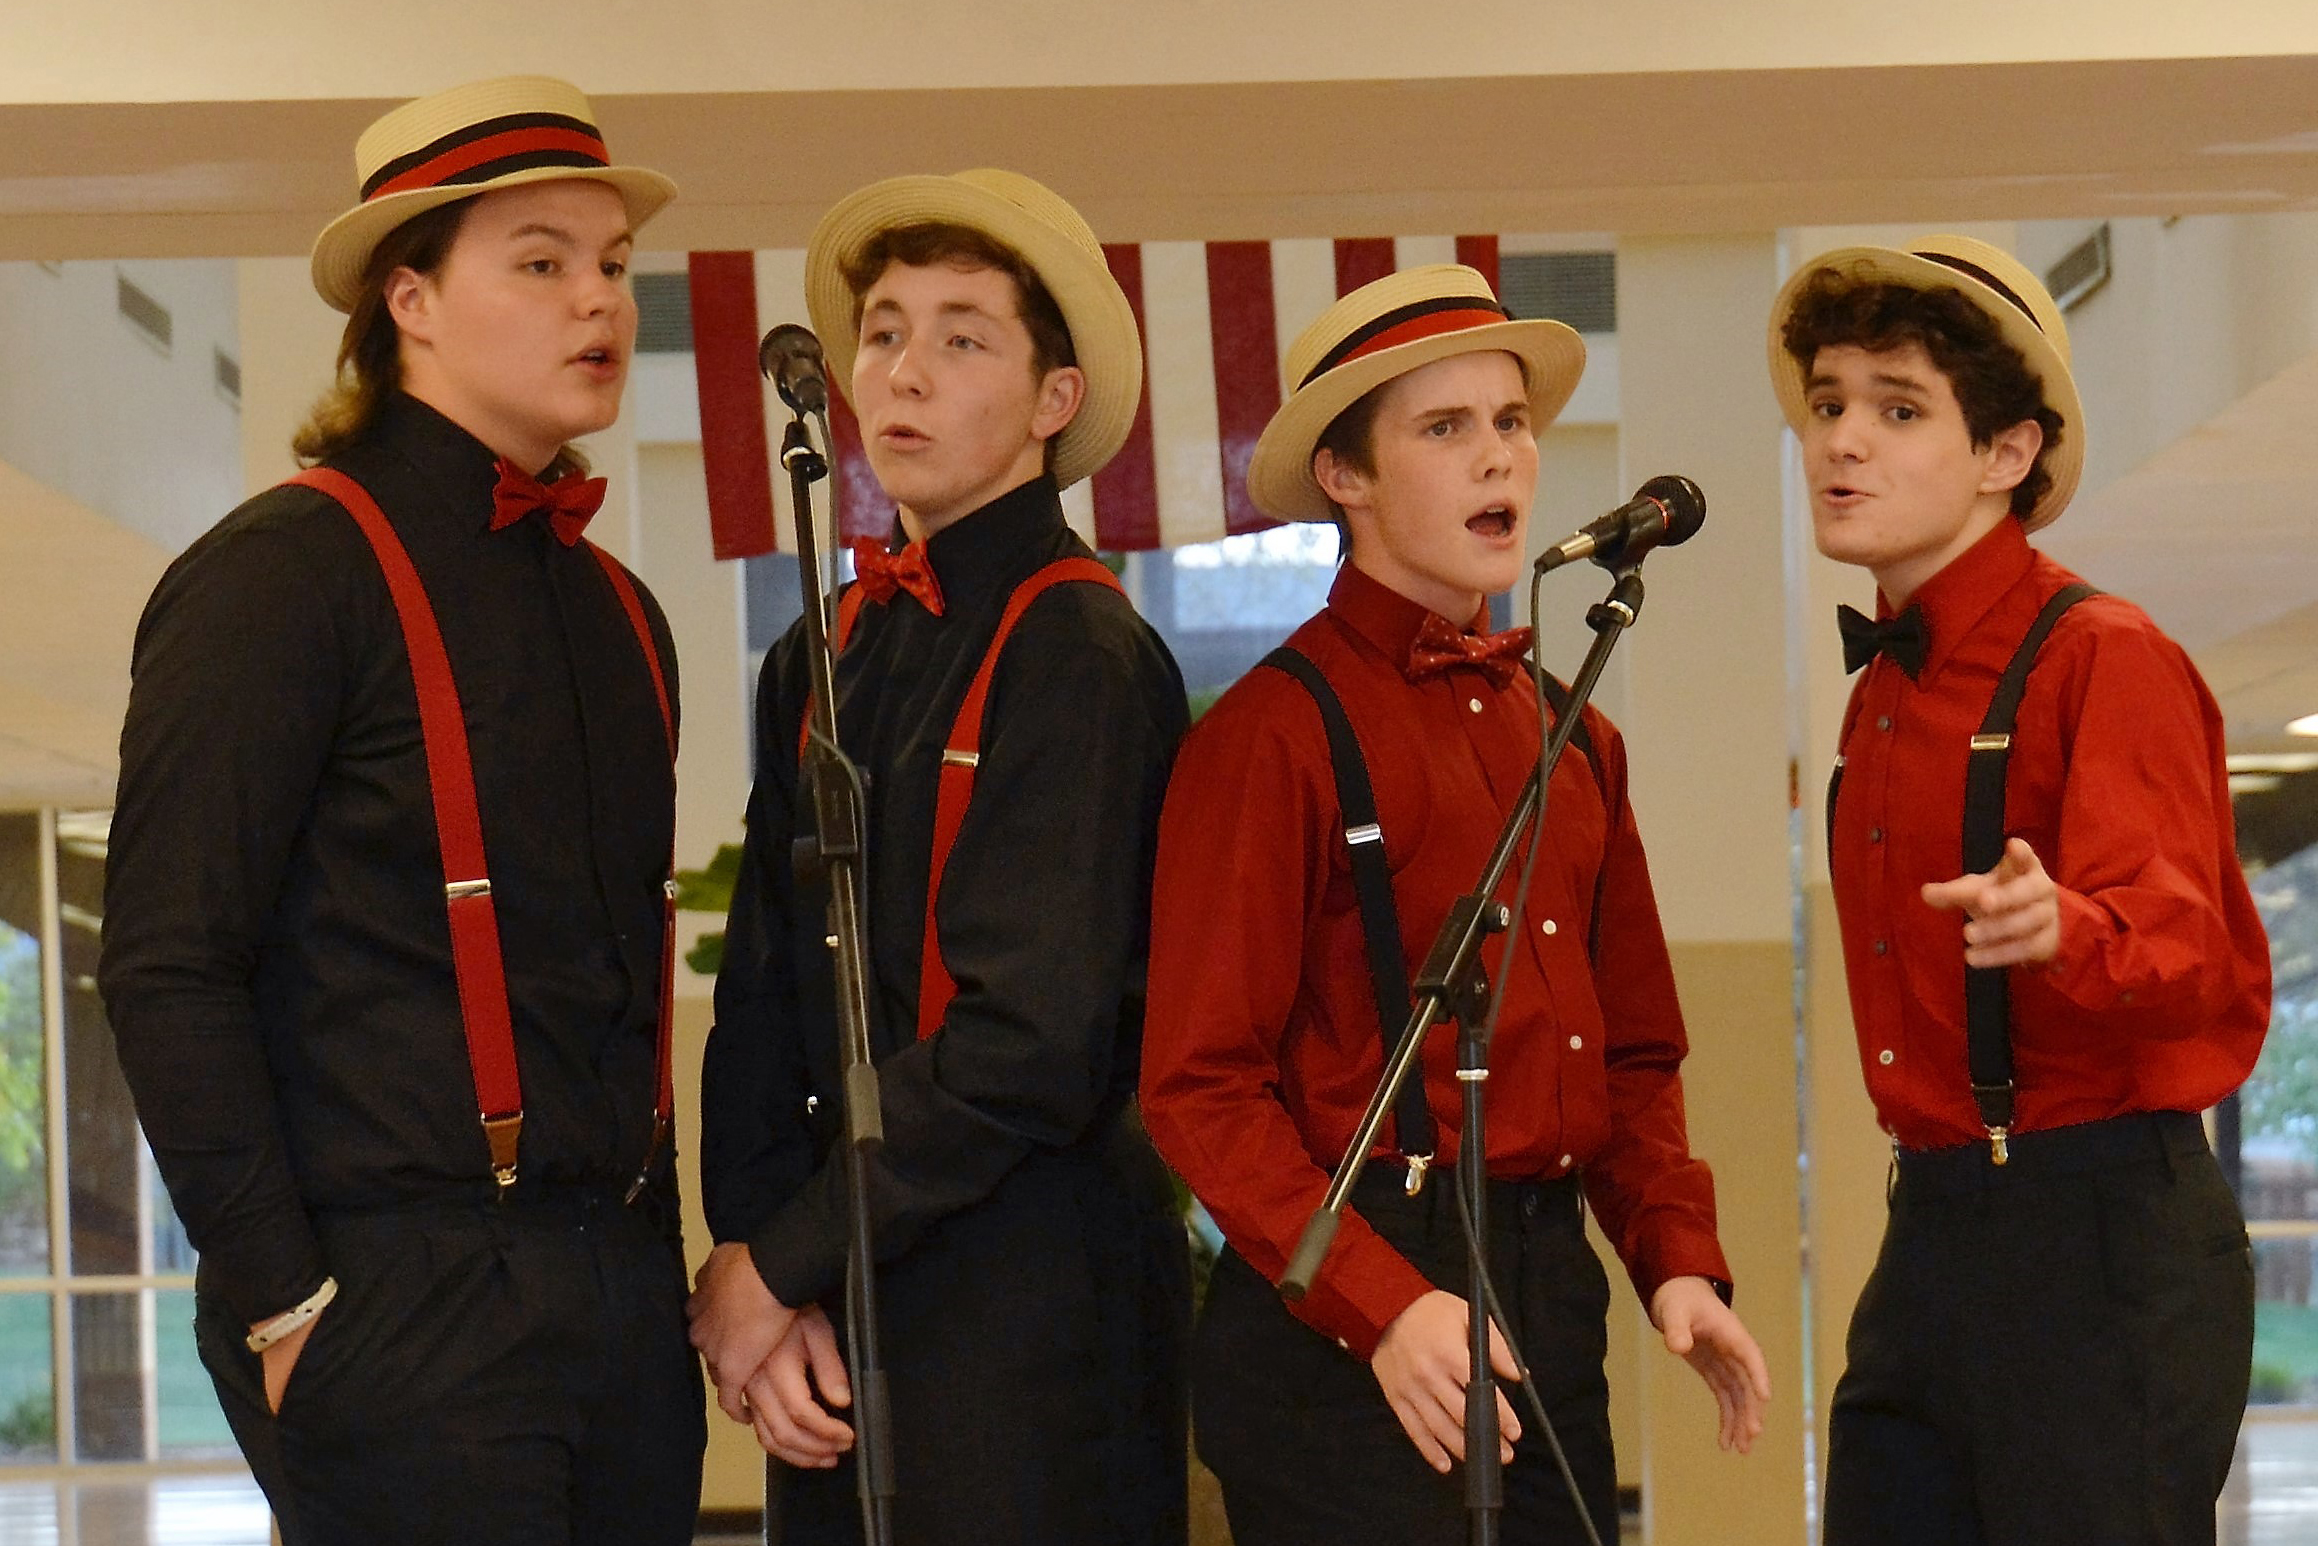 Four Westerville North High School students singing as a barbershop quartet and entertained guests